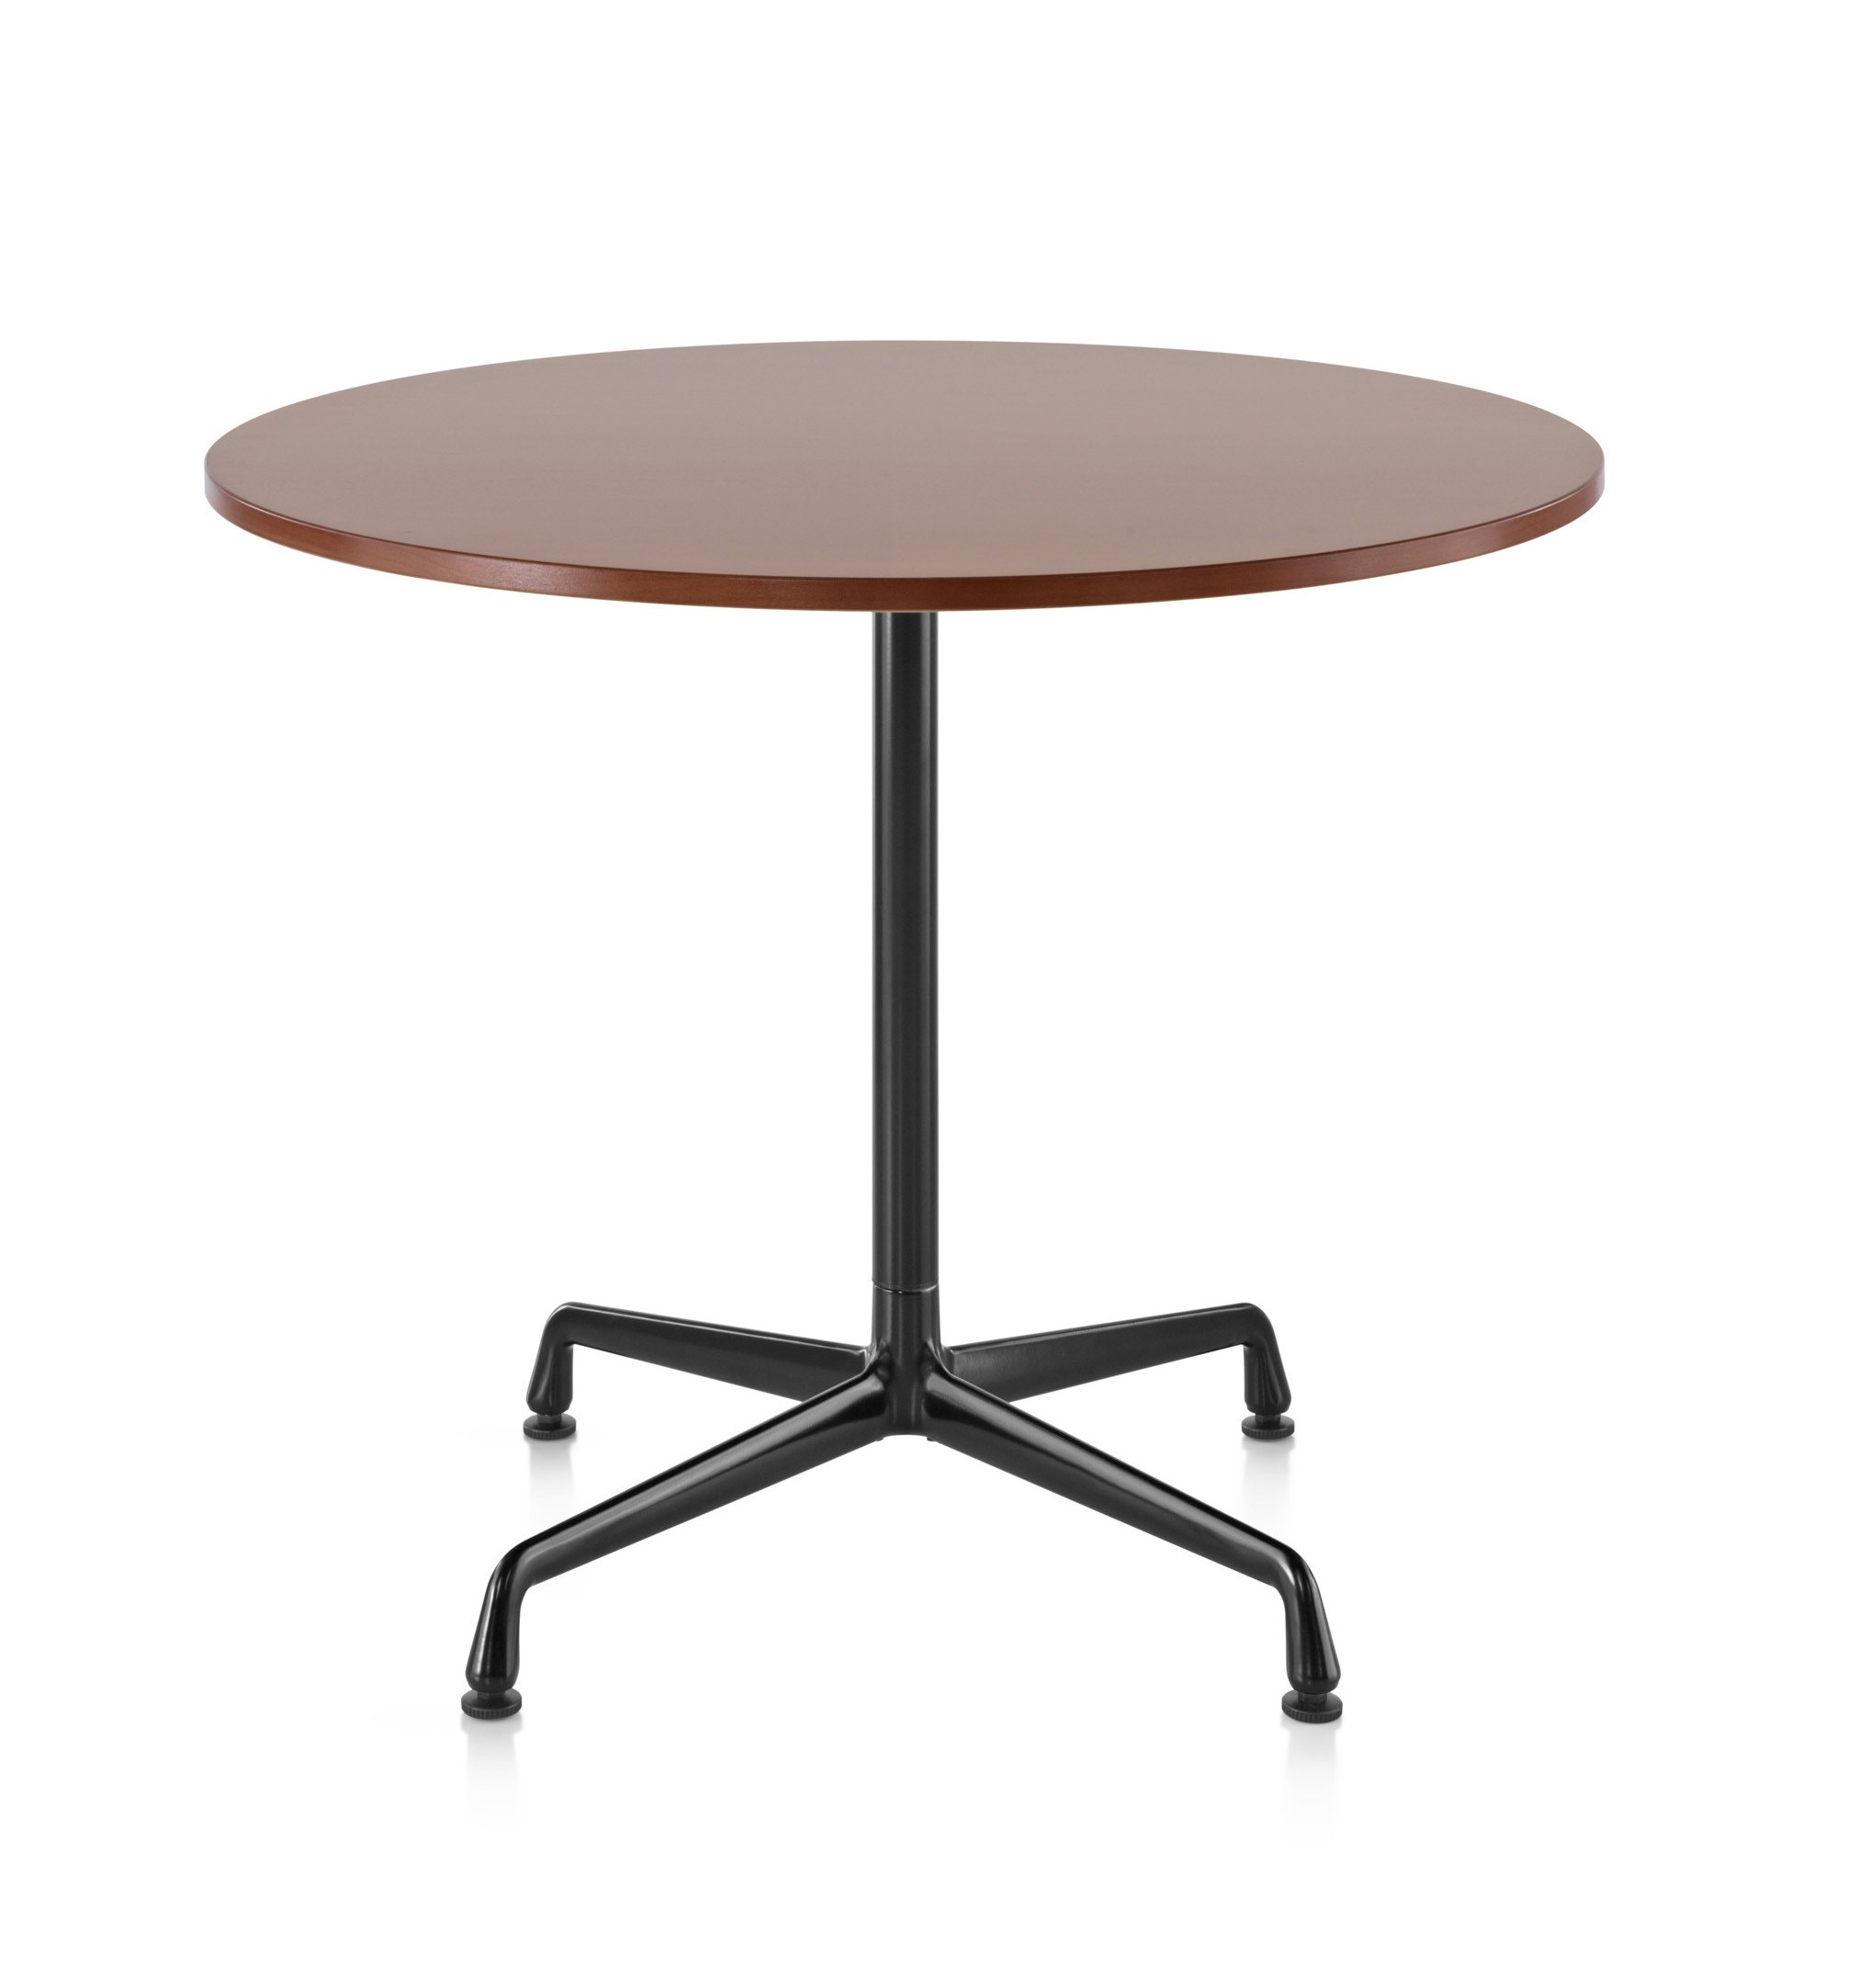 Herman Miller Eames Conference Table Round GR Shop Canada - Round pedestal conference table